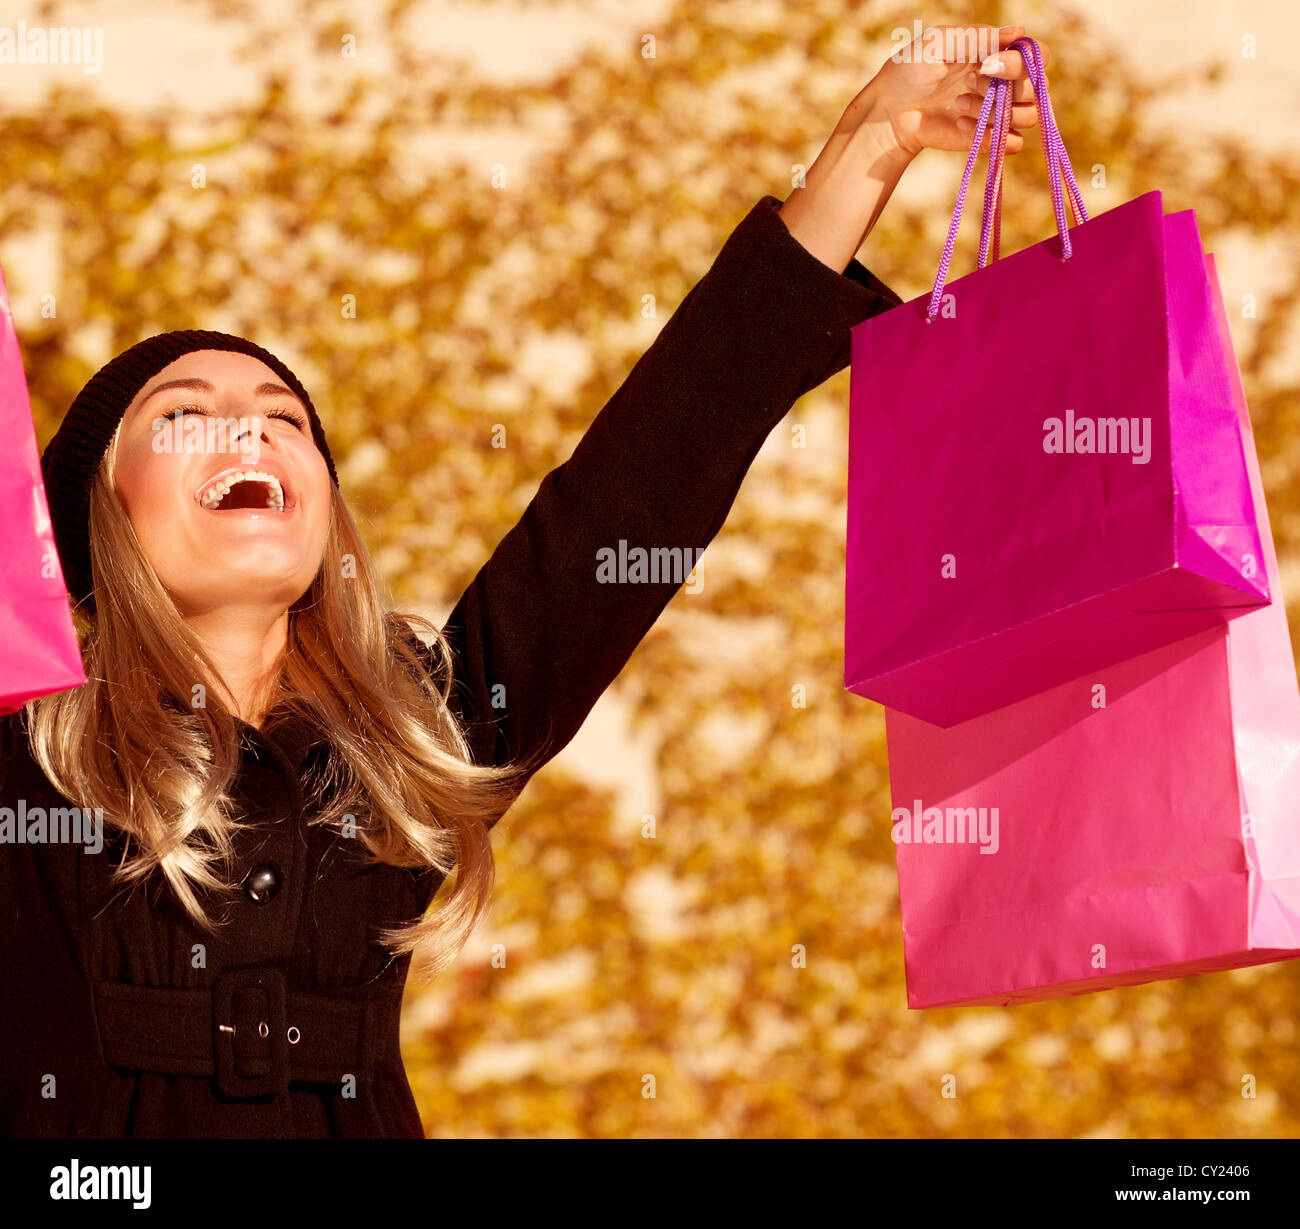 Photo of attractive woman expressing joy of her new purchase, happy good looking girl with pink shopping bags walking - Stock Image